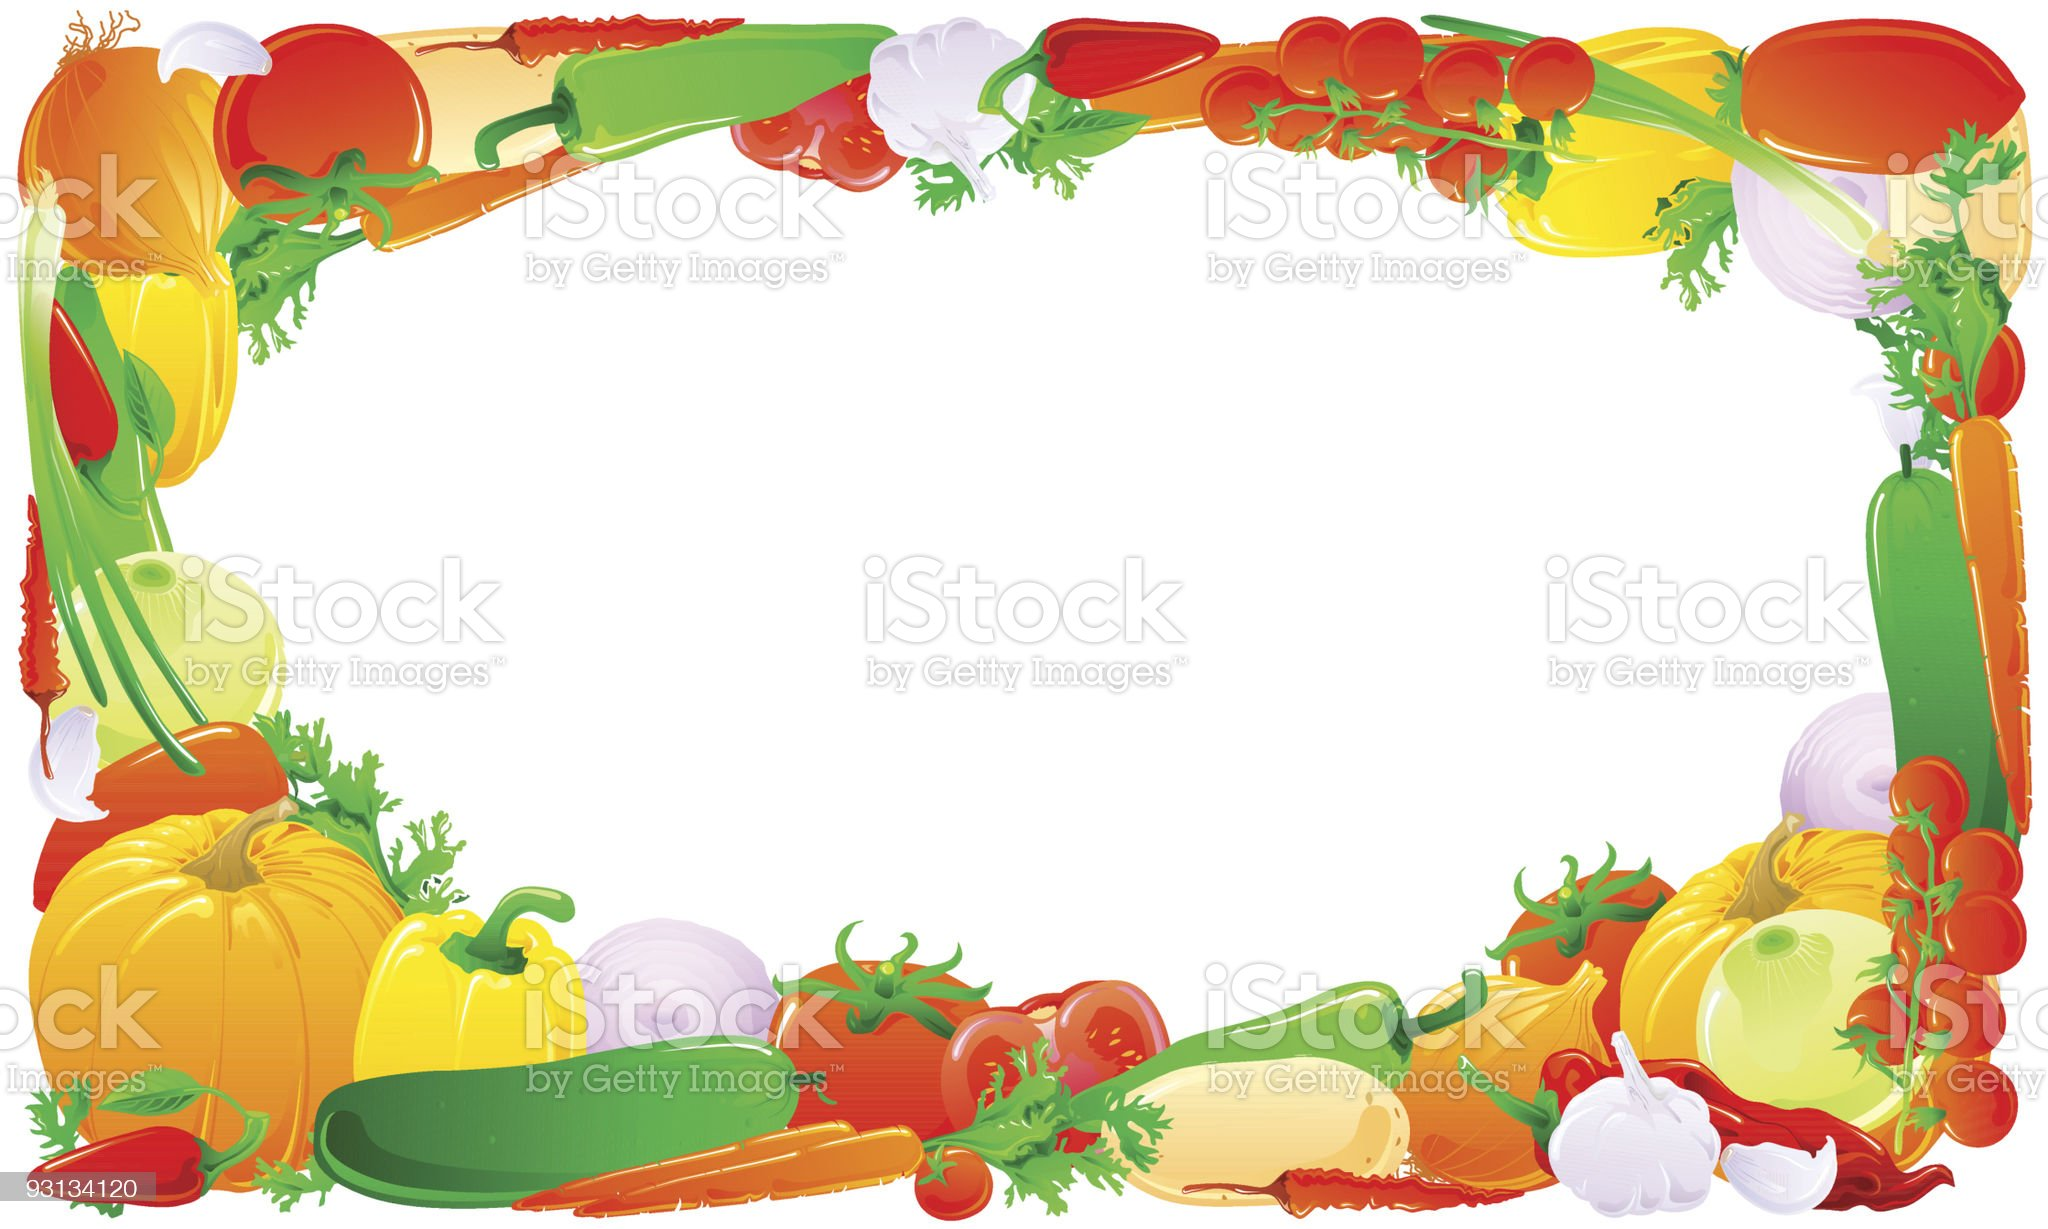 Colorful vegetable frame royalty-free stock vector art